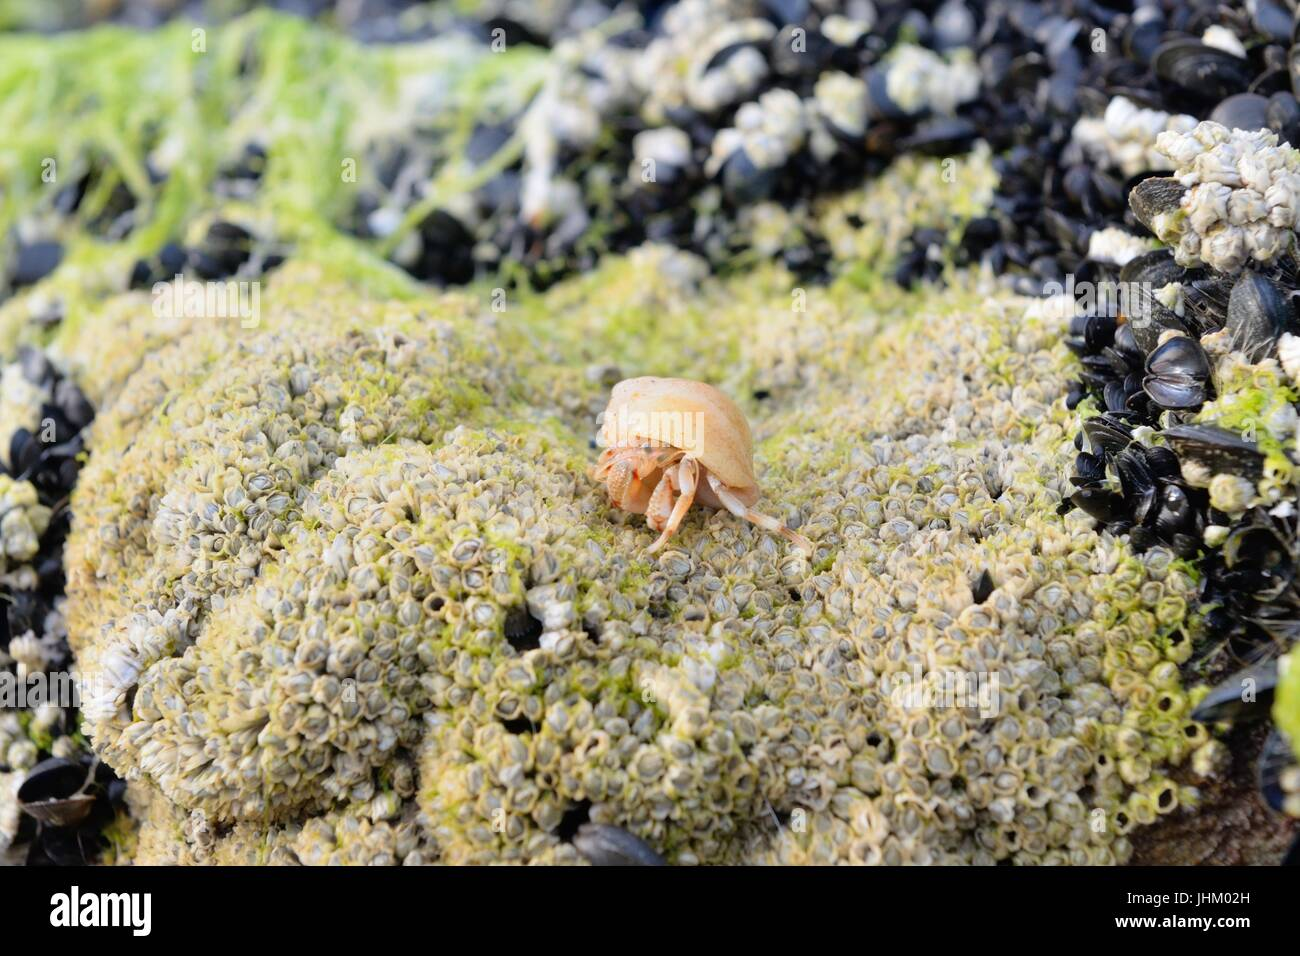 A hermit crab crawls over a rock covered in crustaceans on Dornoch beach, Sutherland, Scotland, UK - Stock Image